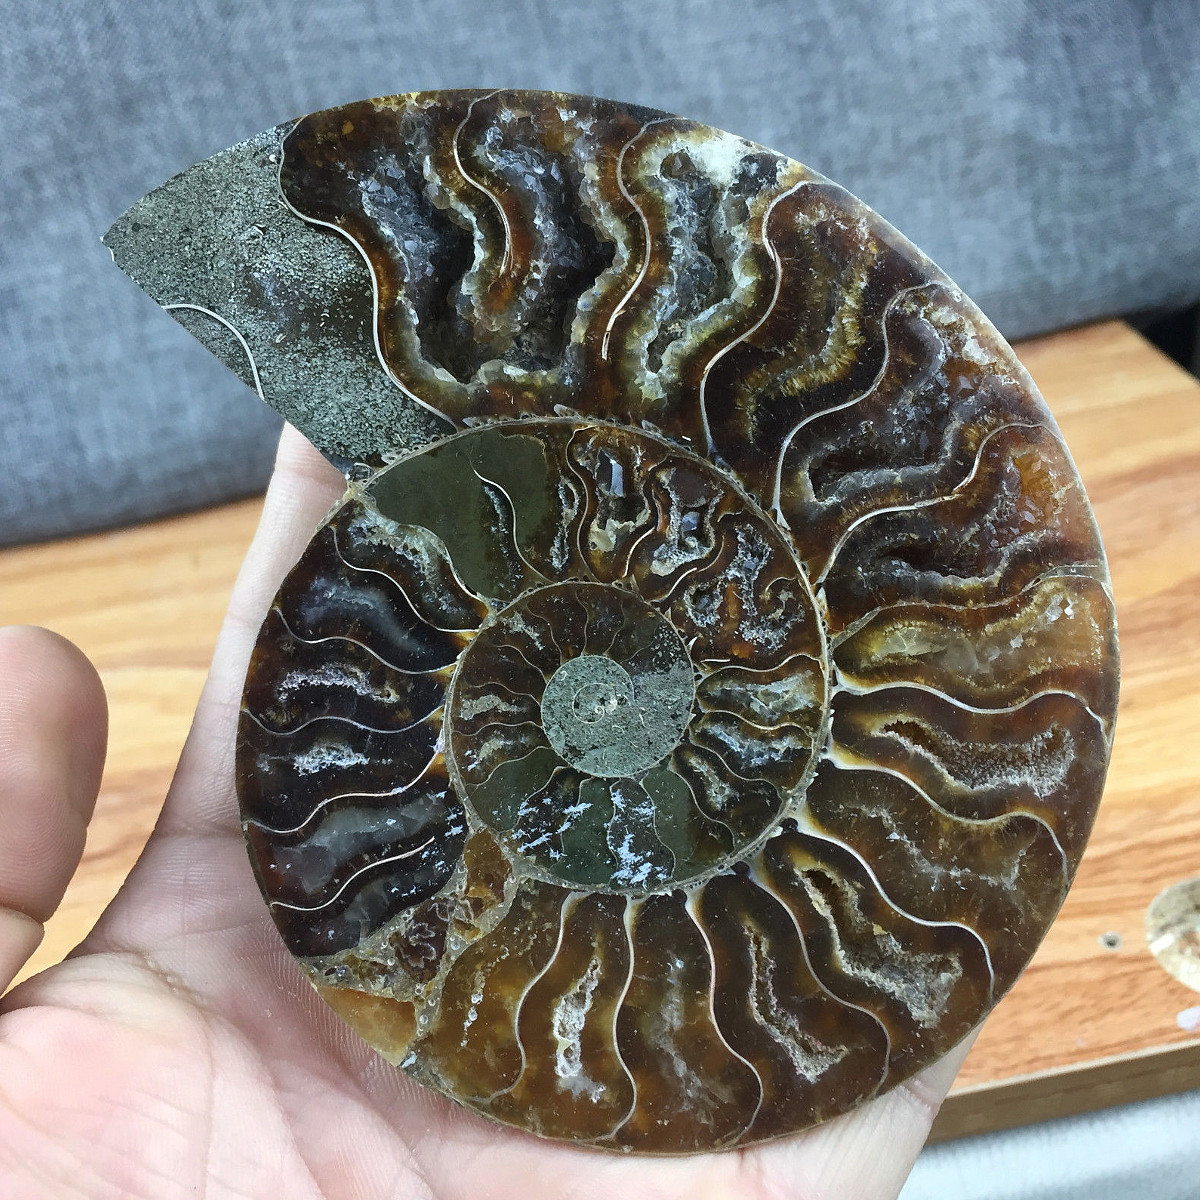 1pc-Large-12cm-Natural-Ammonite-Fossil-Sea-Conch-Crystal-Specimen-Slice thumbnail 2